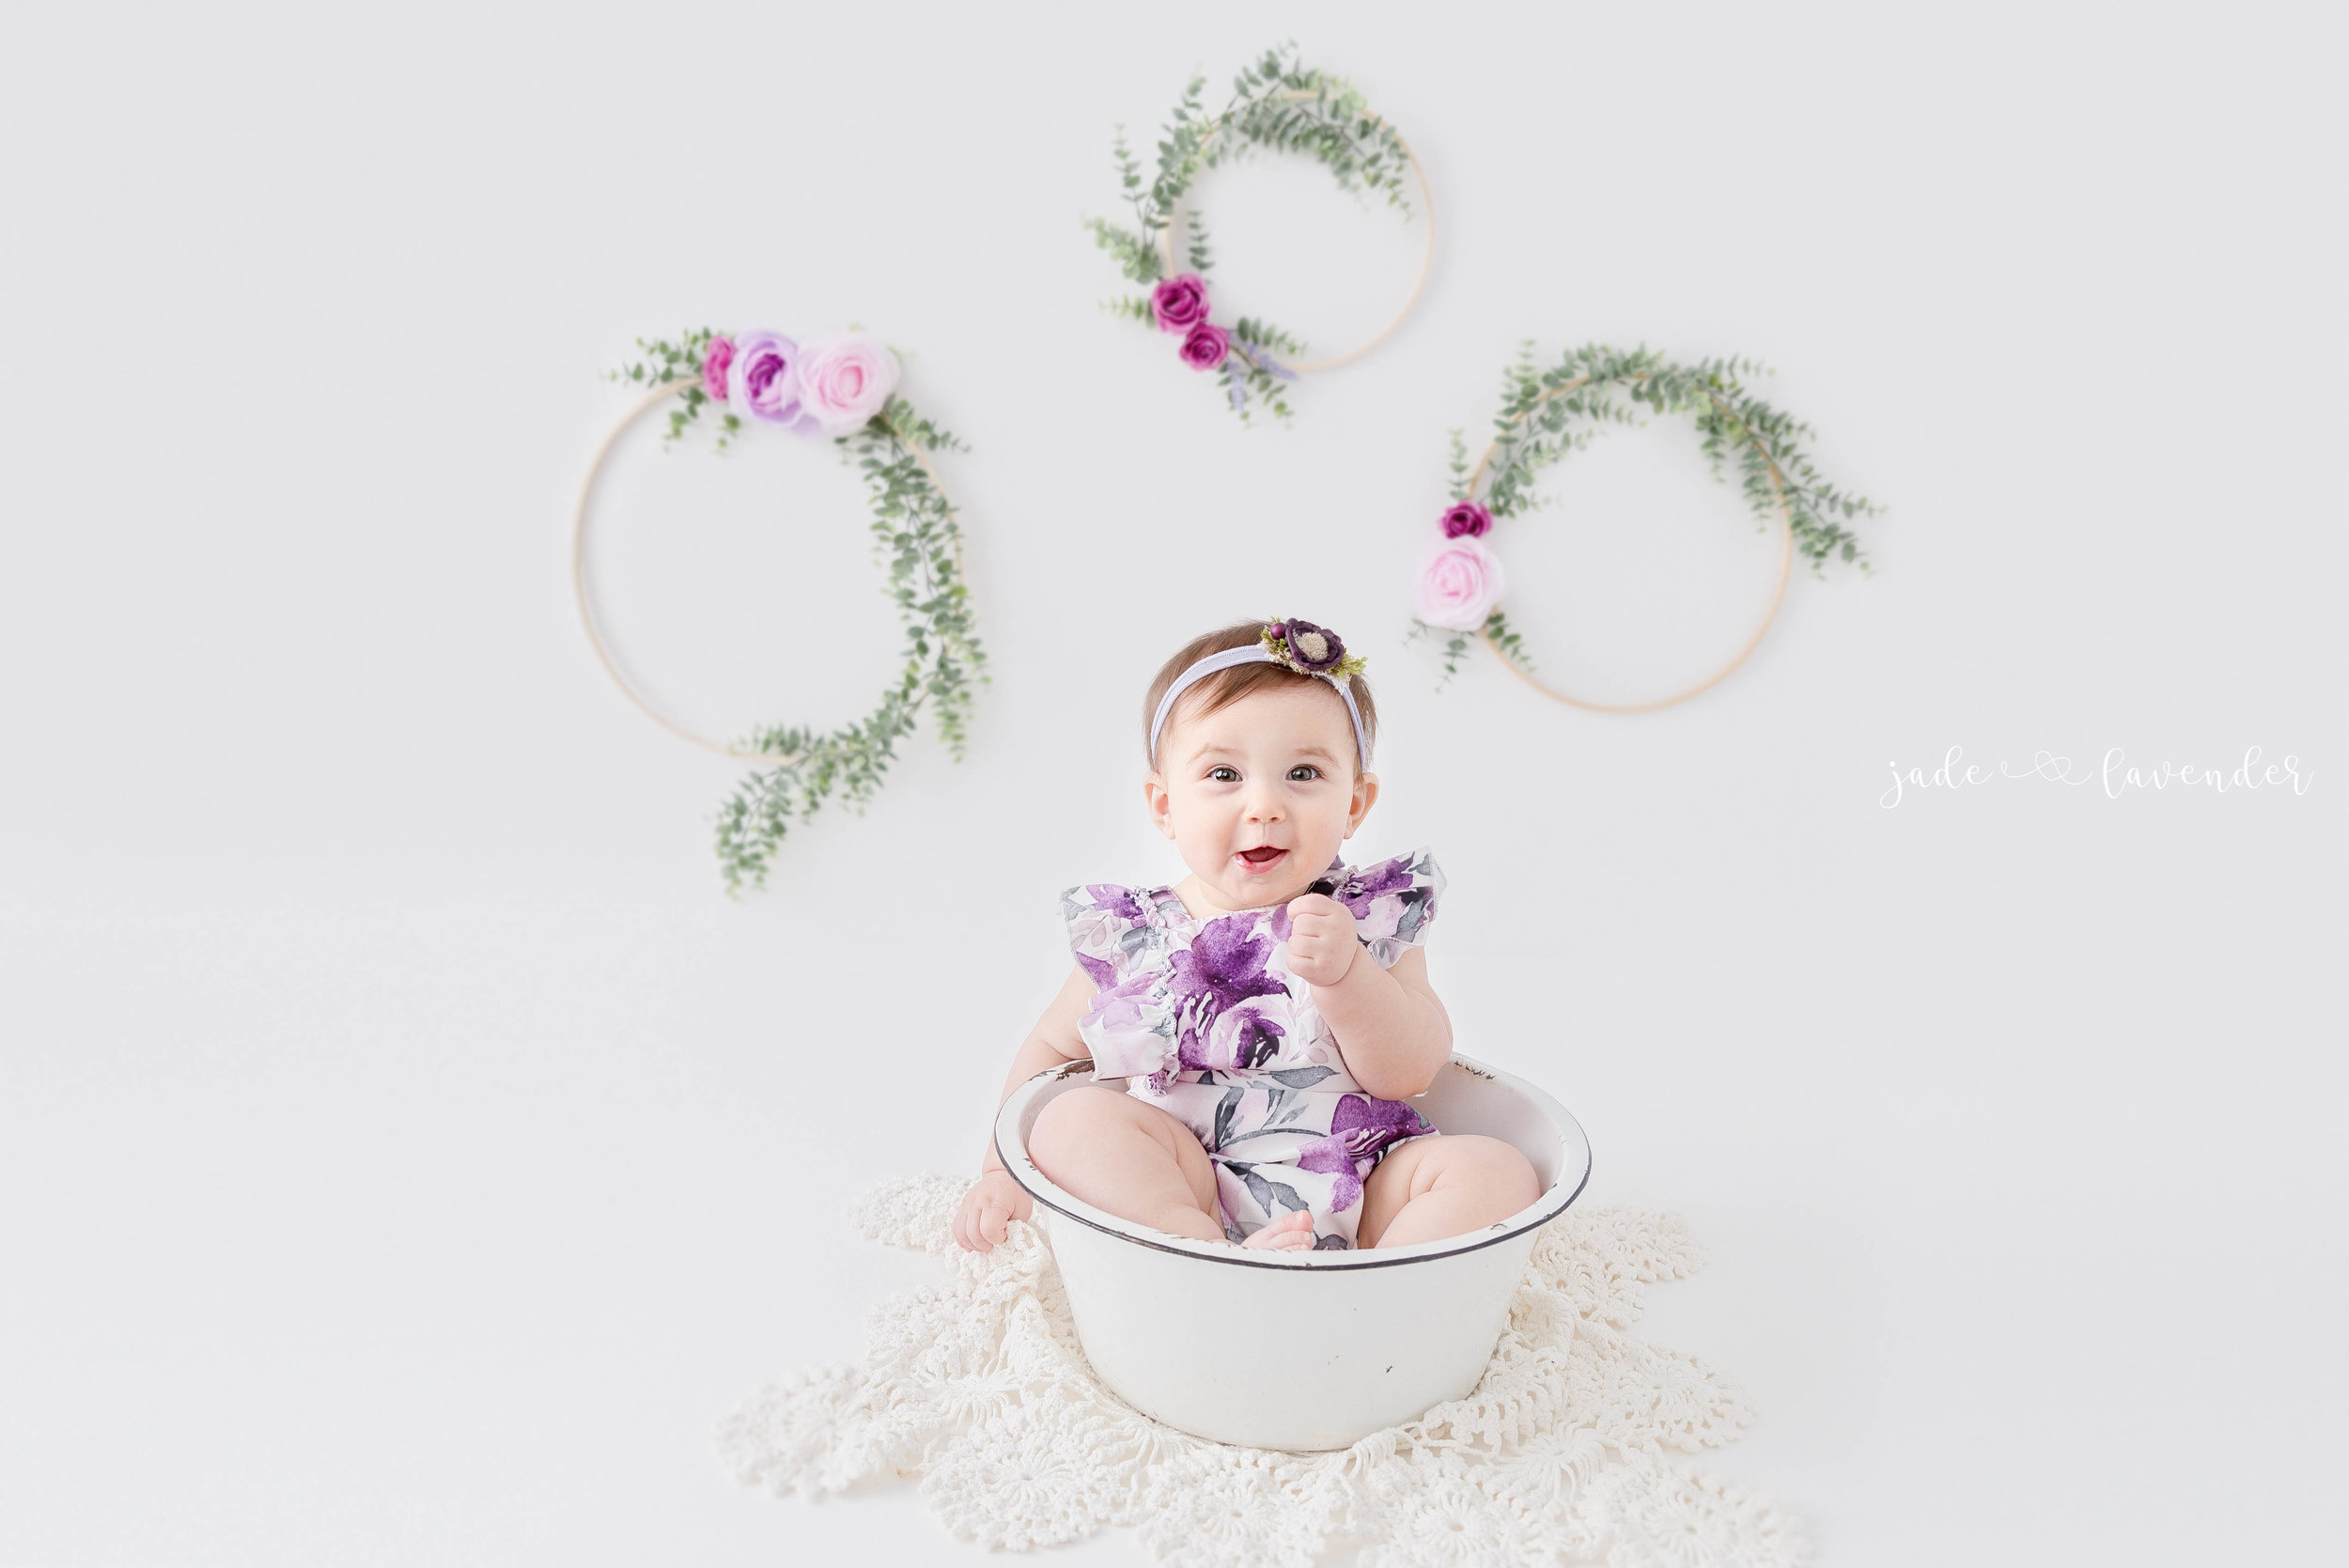 milestone-photos-six-month-photos-baby-images-milk-bath-spokane-washington.jpg